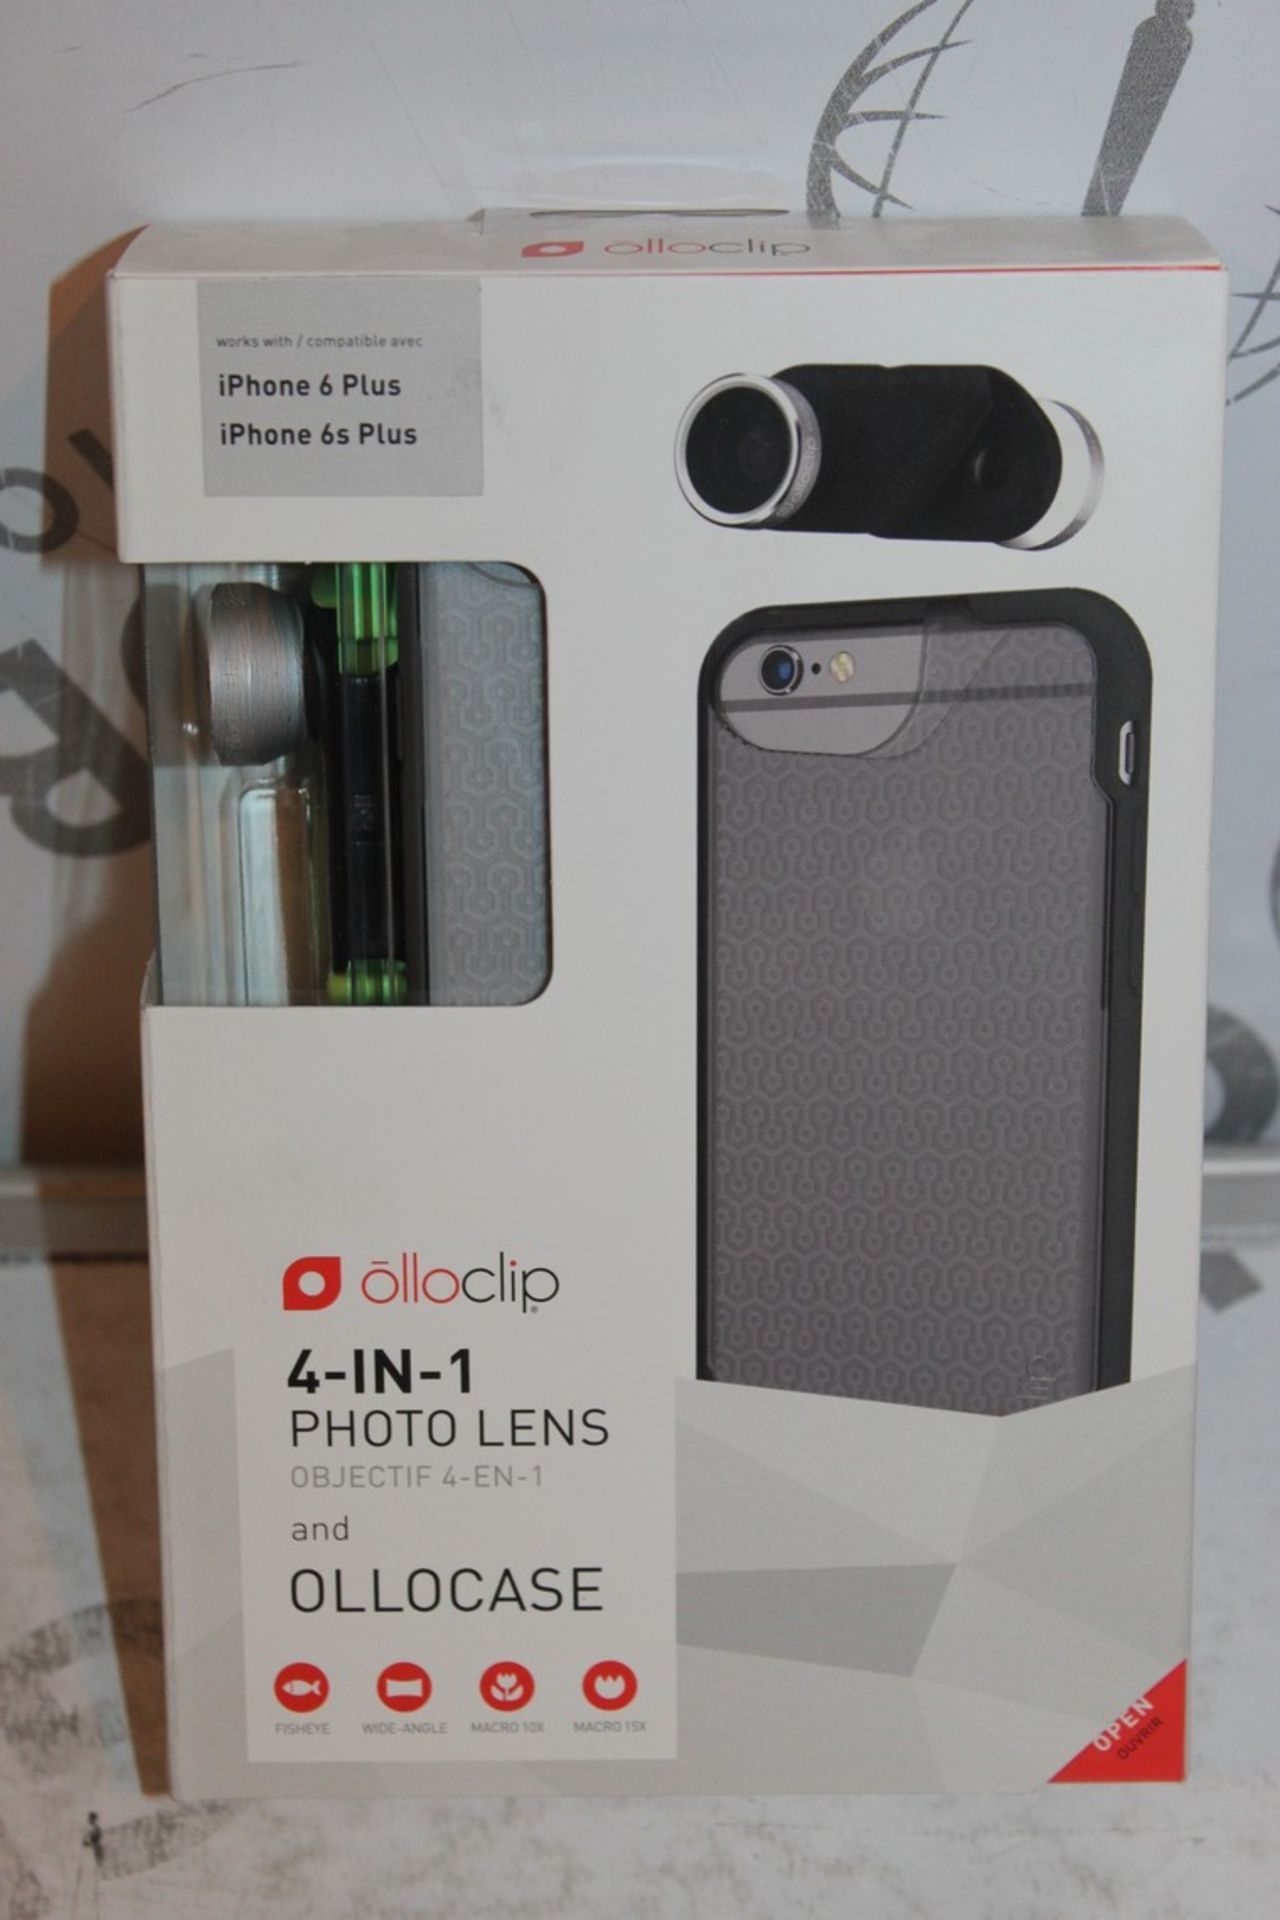 Lot 14 - Lot to Contain 5 Boxed, Brand-New, Ollo Clip, 4in1 iPhone 6 + and 6s + Photo Cases, Combined RRP£